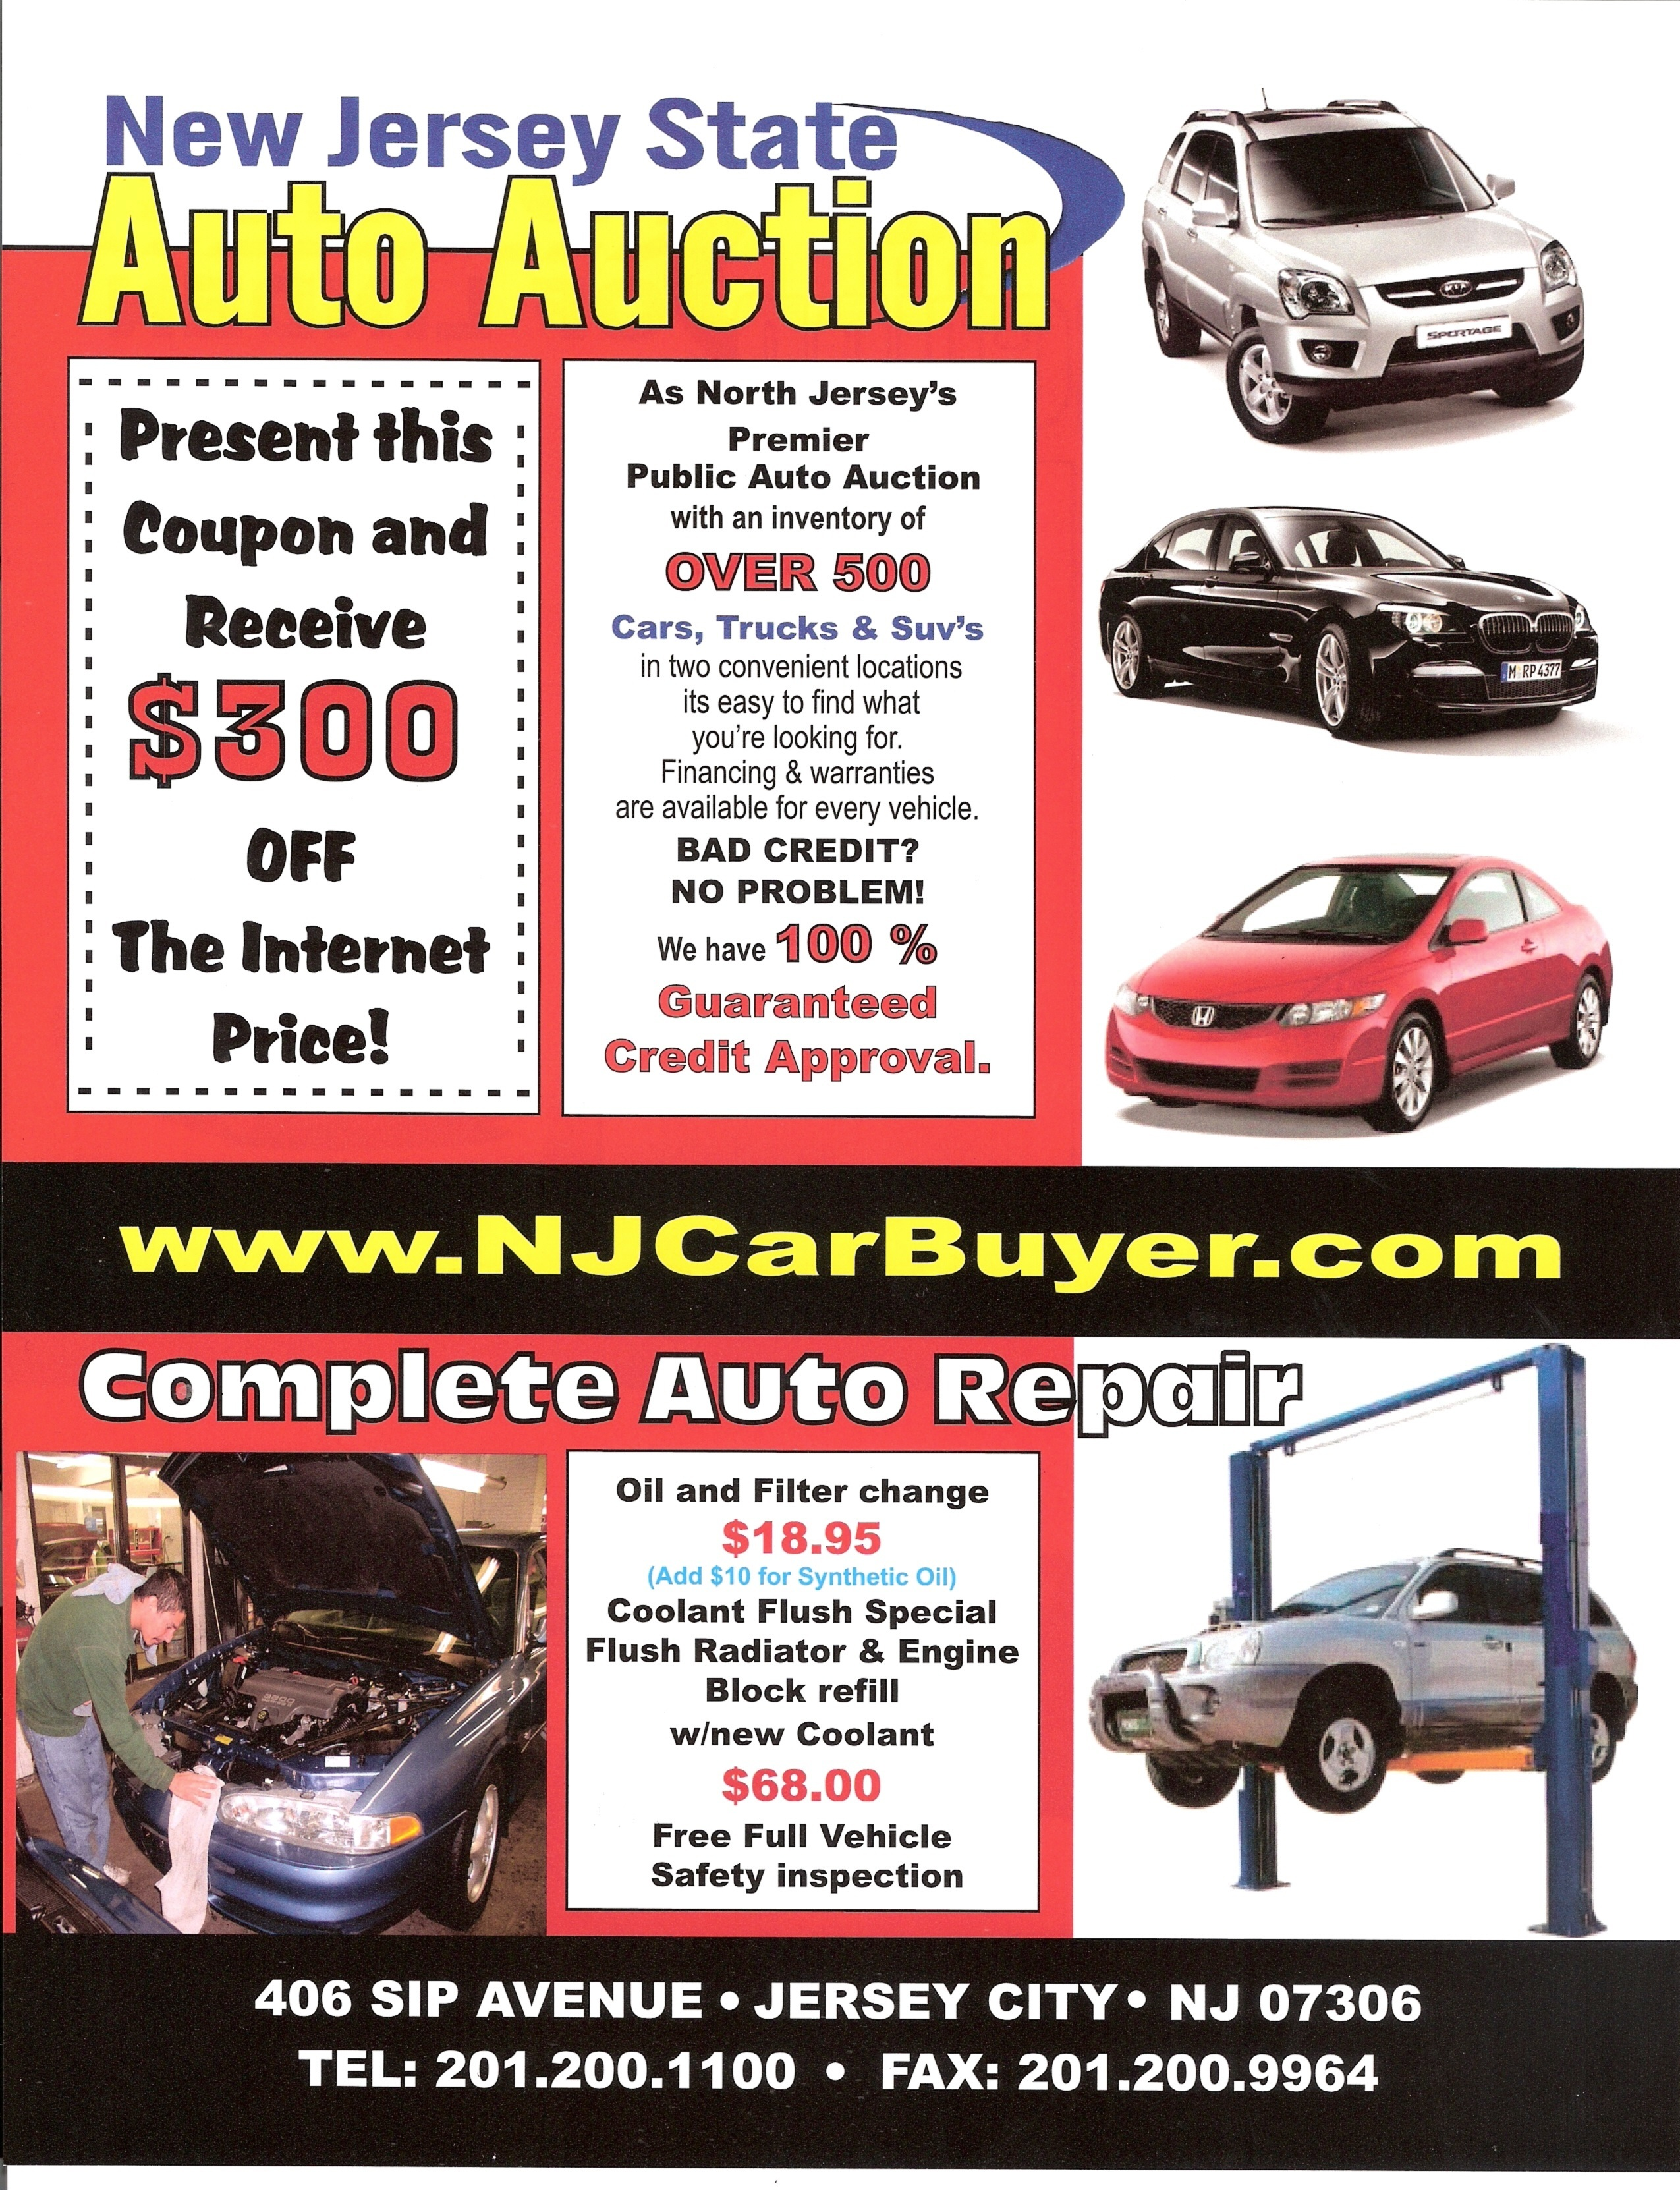 New Jersey State Auto Auction Be es an AskPatty Certified